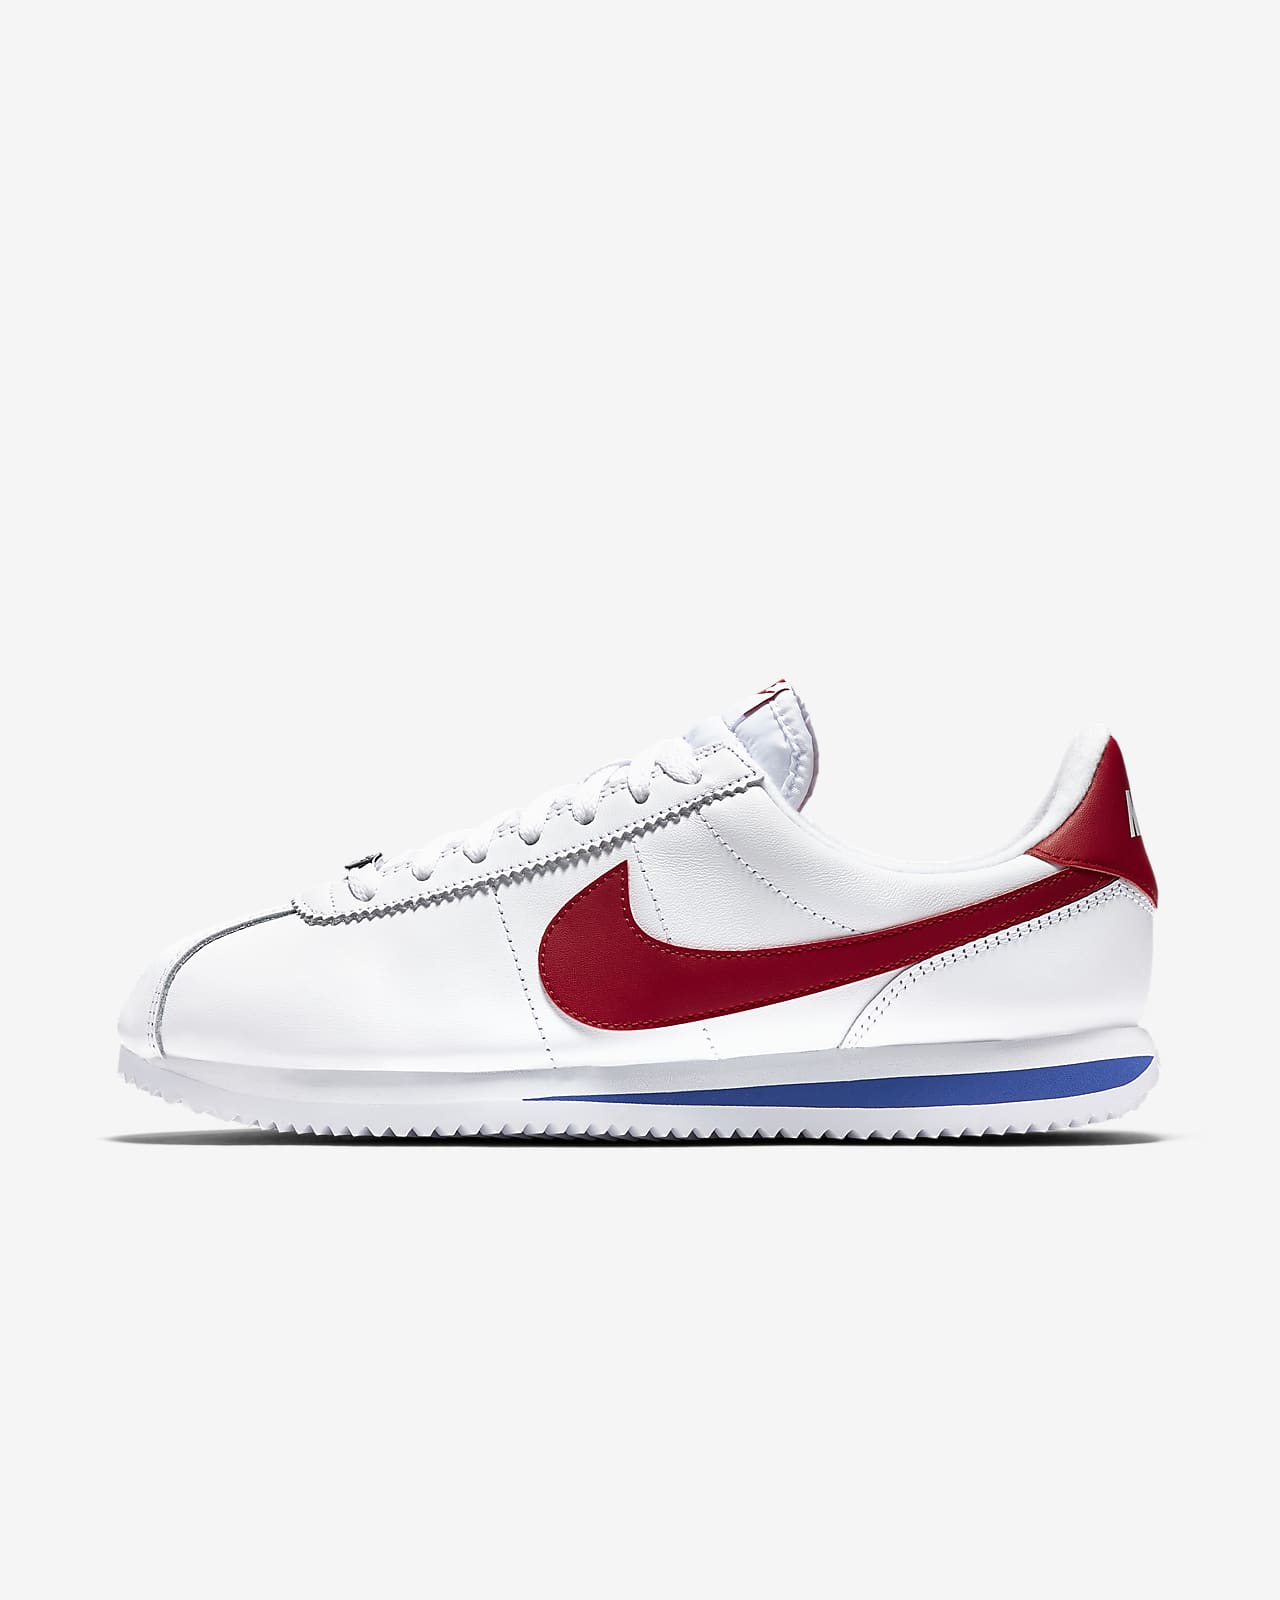 Dependiente Literatura carbón  Nike Cortez Basic Leather OG Men's Shoe. Nike.com